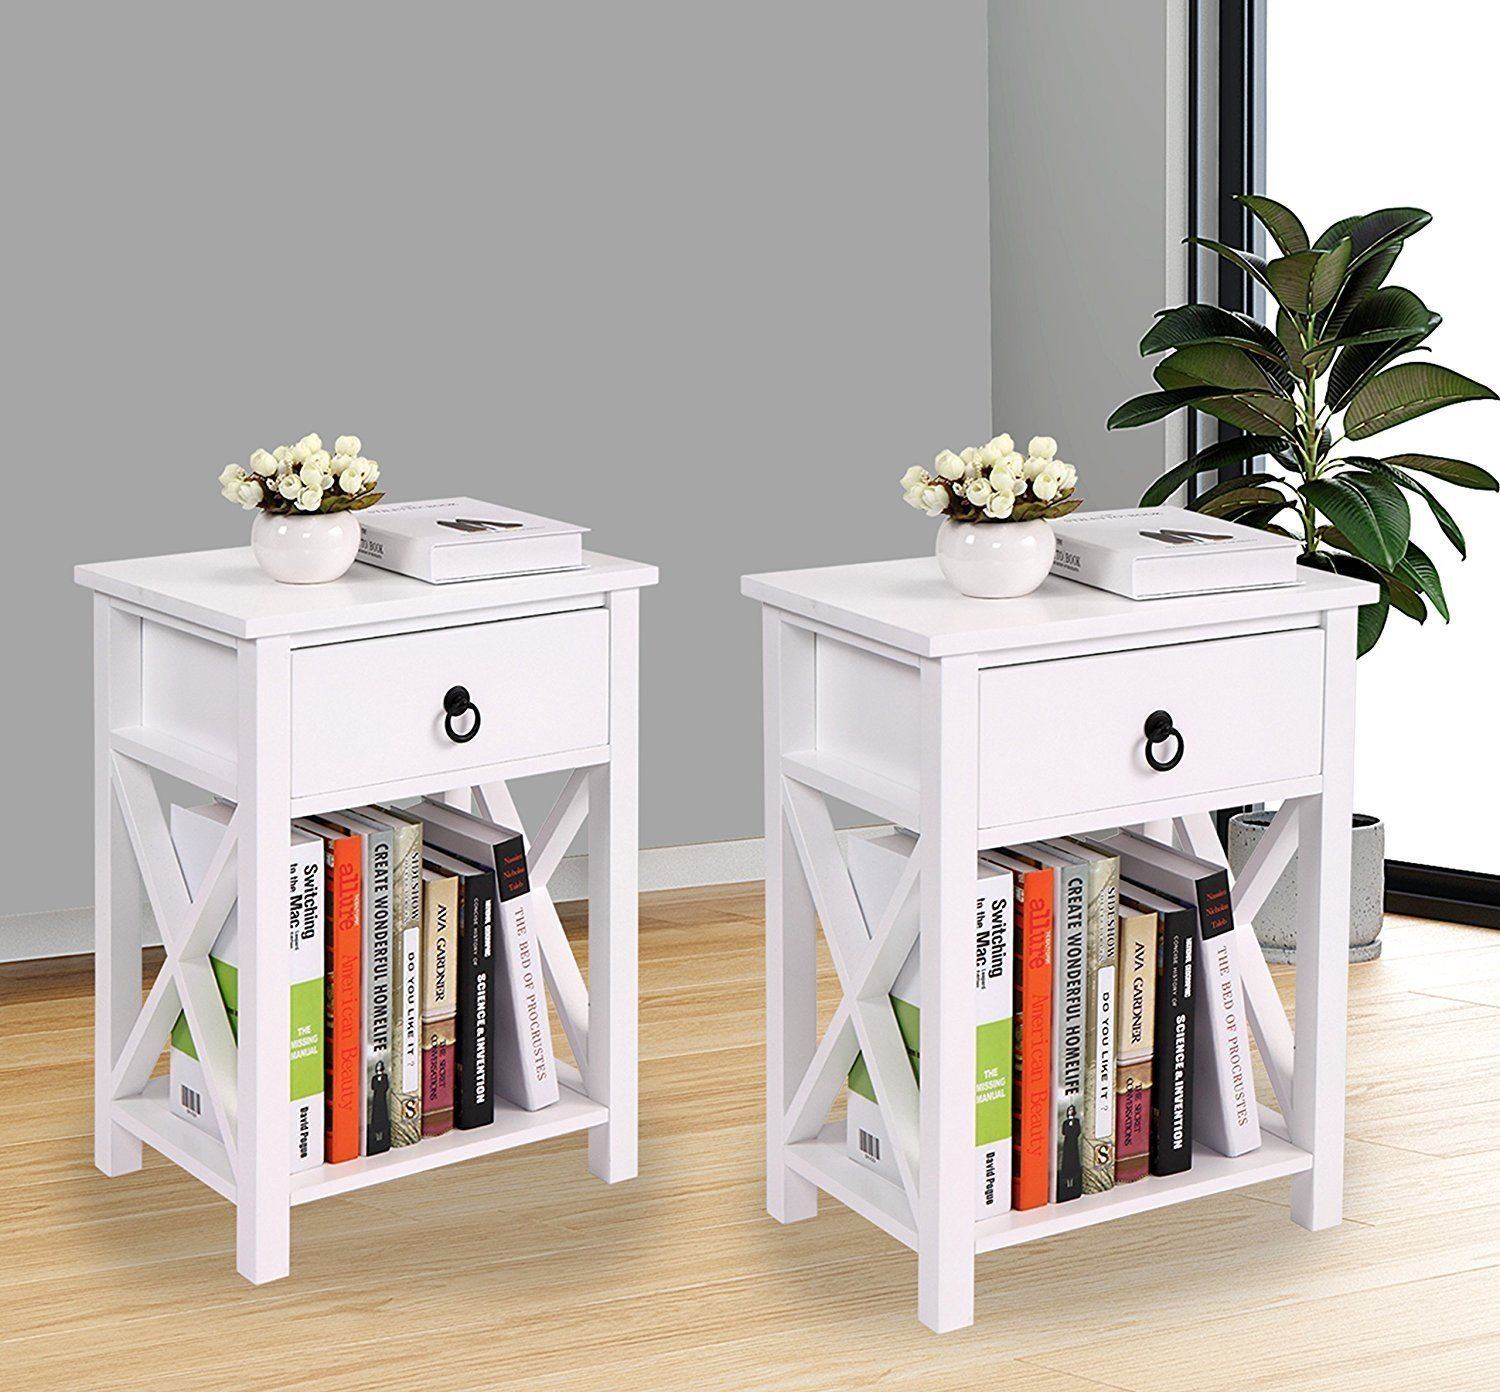 LAZYMOON Set of 2 MDF Nightstand Table X-Design Kids Room End Table Side Table Home Storage White Finish